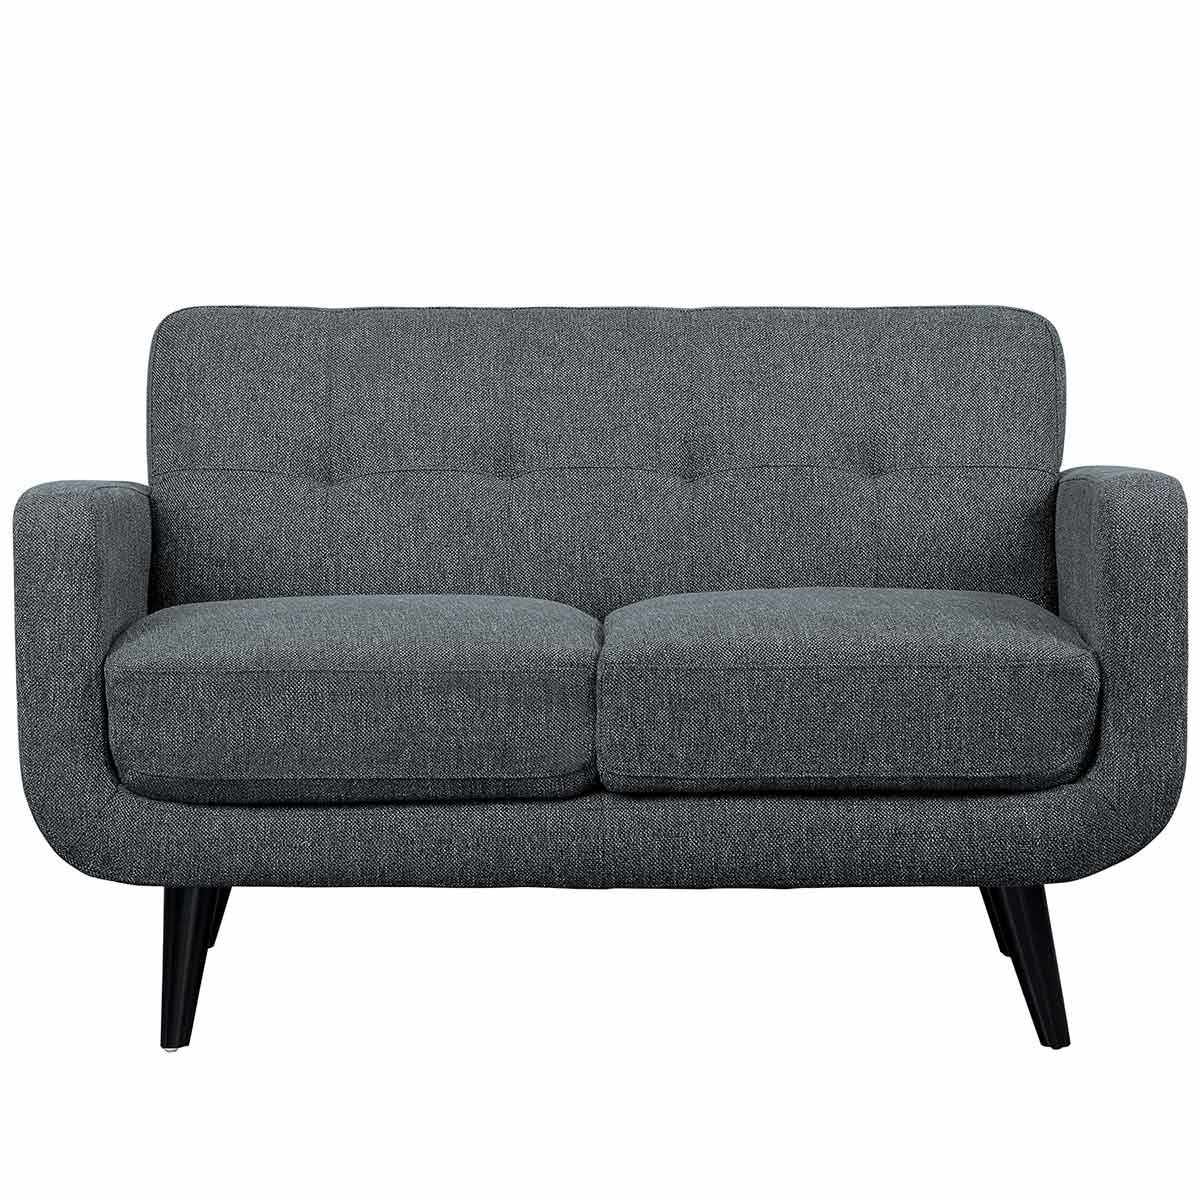 Homelegance Monroe Love Seat - Gray